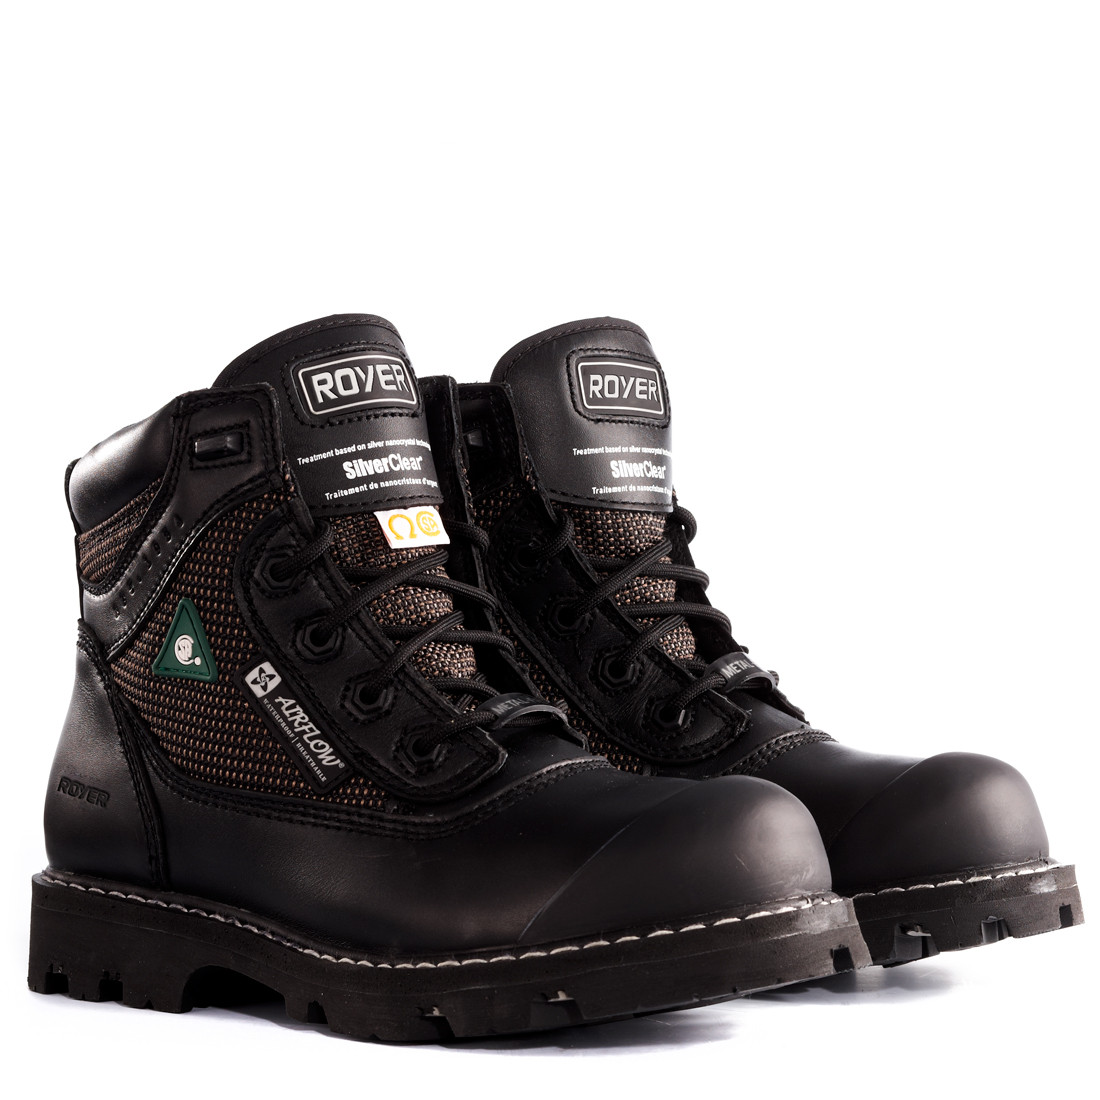 cac6e14557d Royer 10-8400 Black FLX Rubber Sole Waterproof Leather Metal-Free Boot